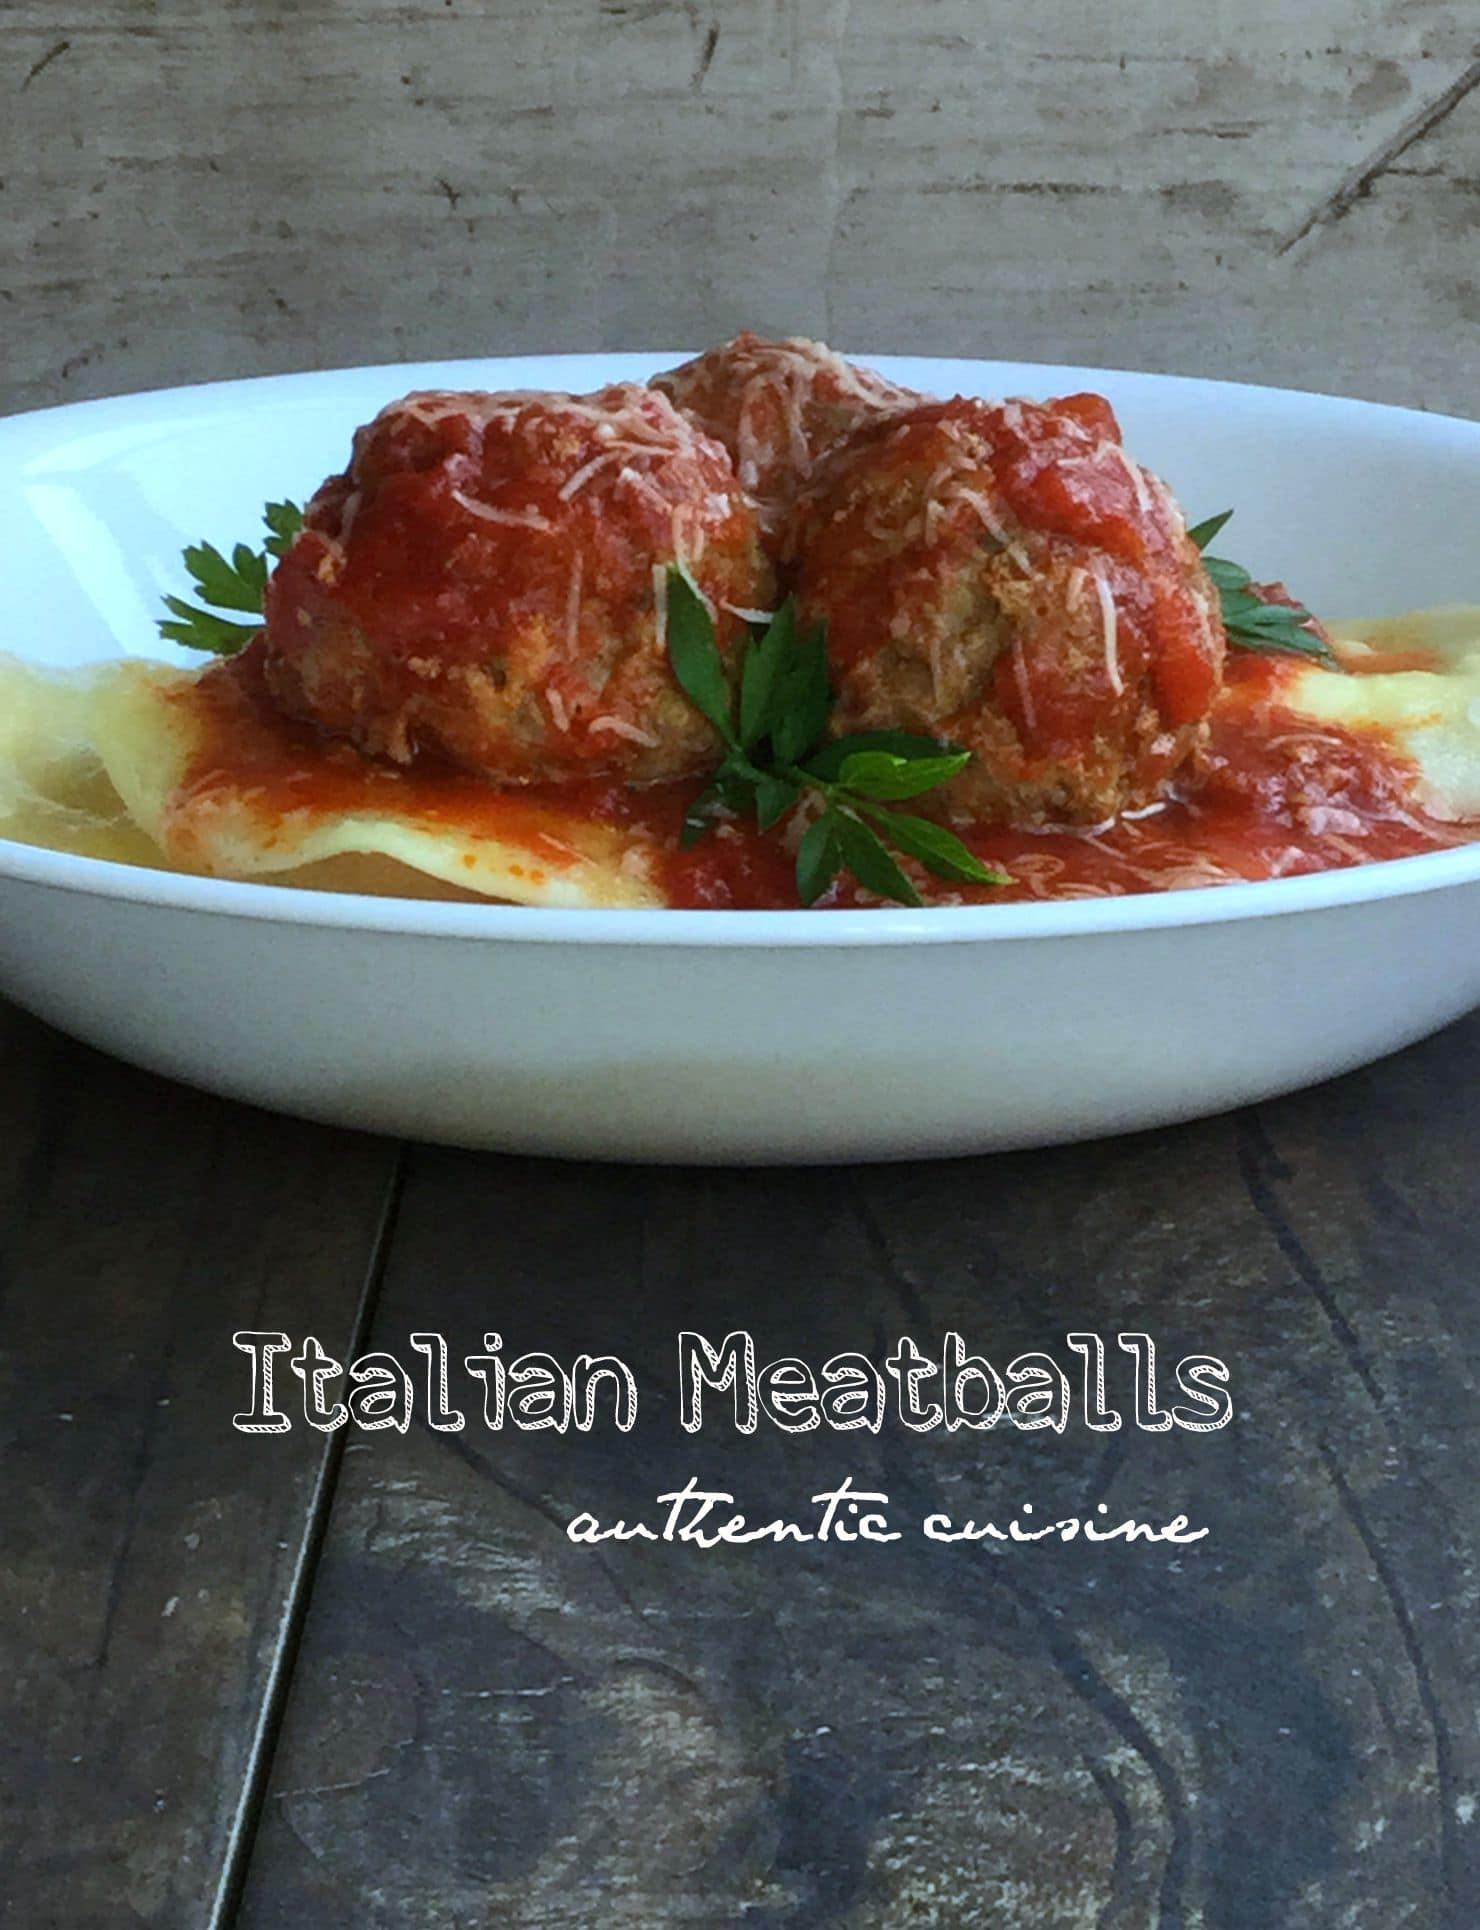 This is a delicious and classic italian recipe, meatballs made with hamburger meat, veal and pork.